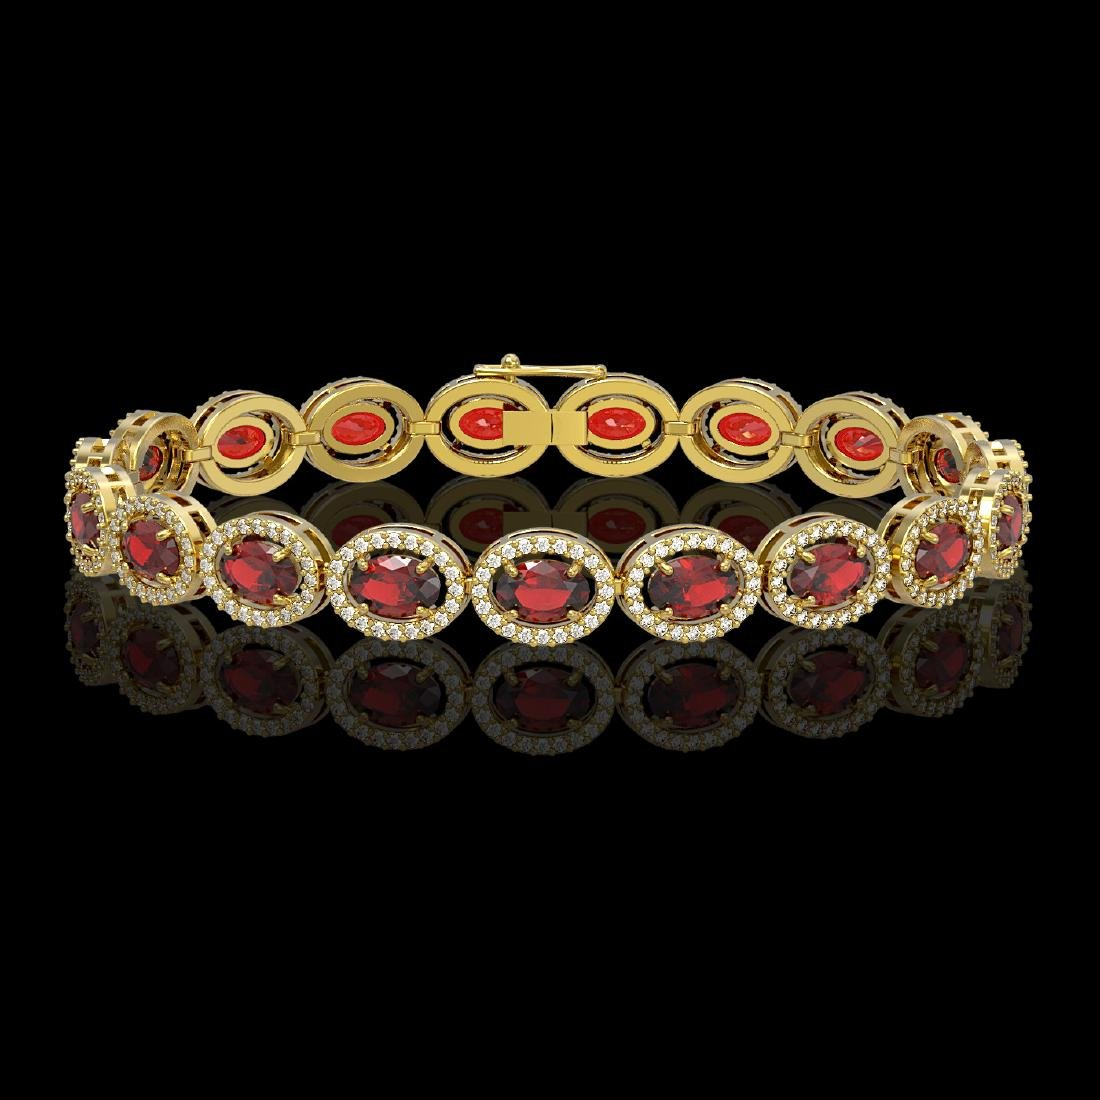 14.63 CTW Garnet & Diamond Halo Bracelet 10K Yellow